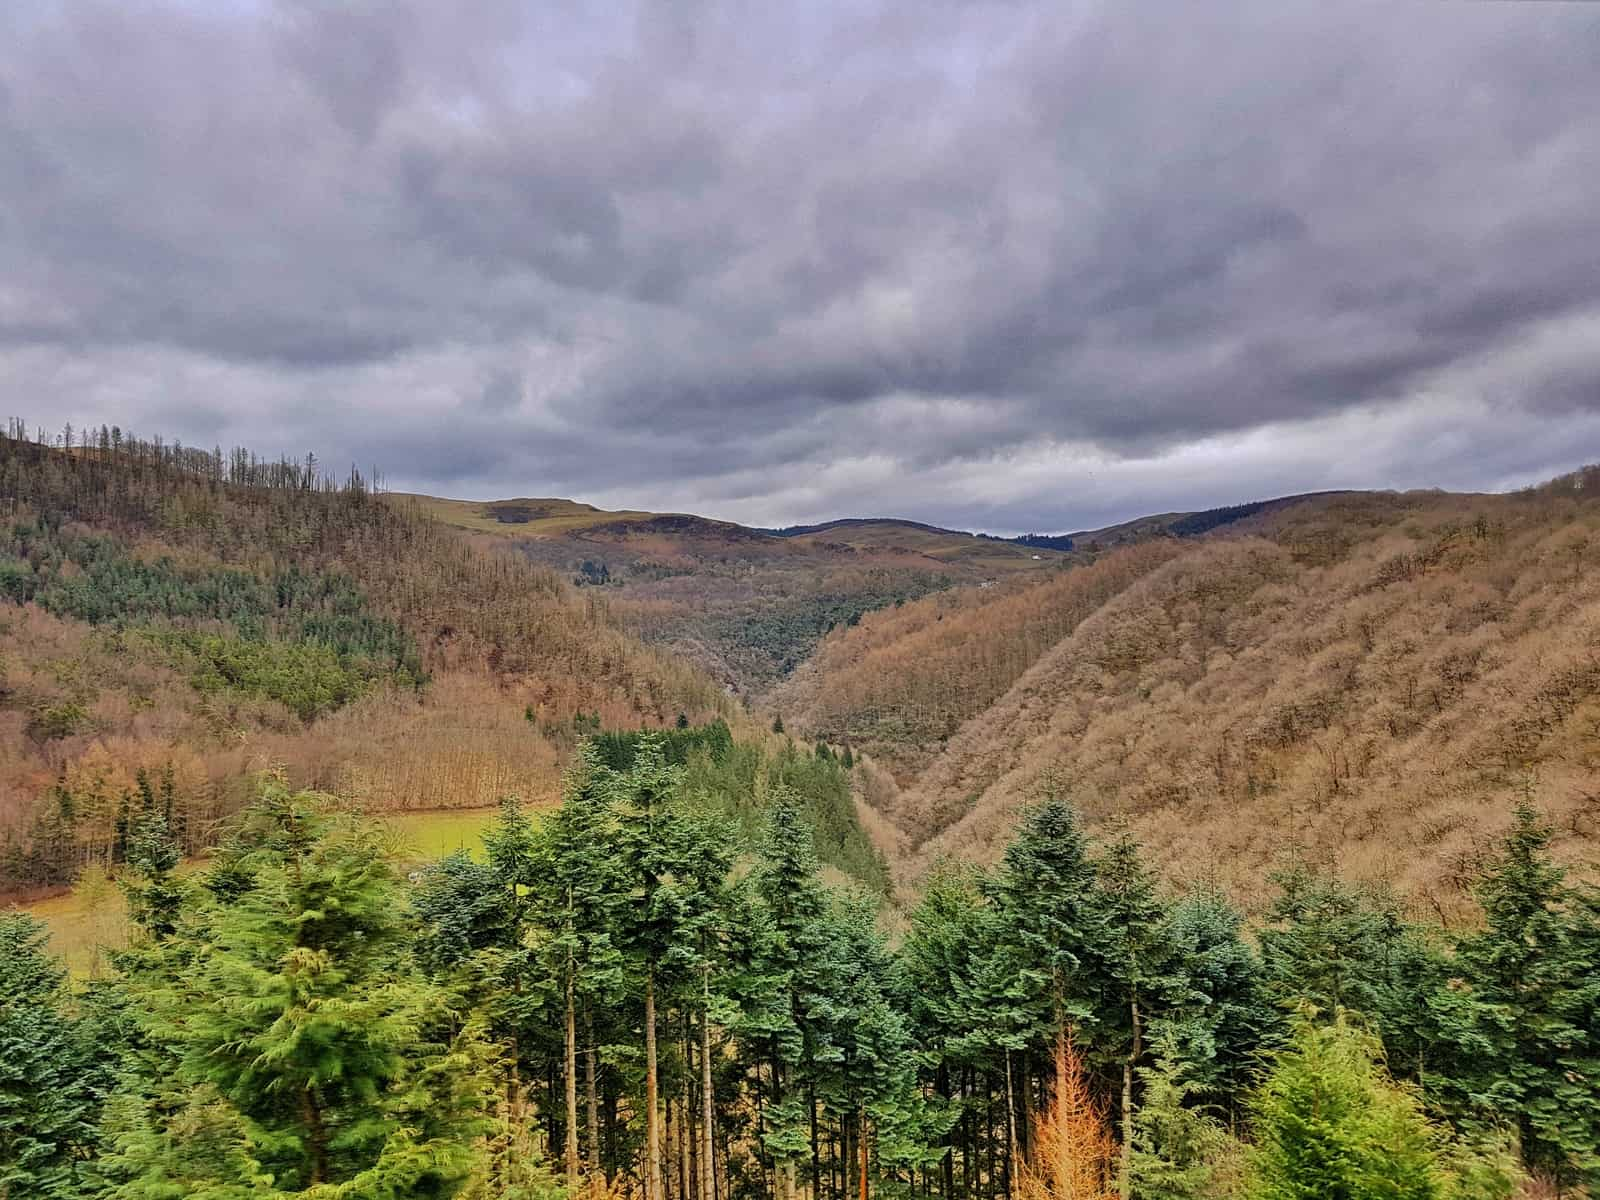 Trees in foreground with hills in background and clouds overhead - view from Vale of Rheidol Railway